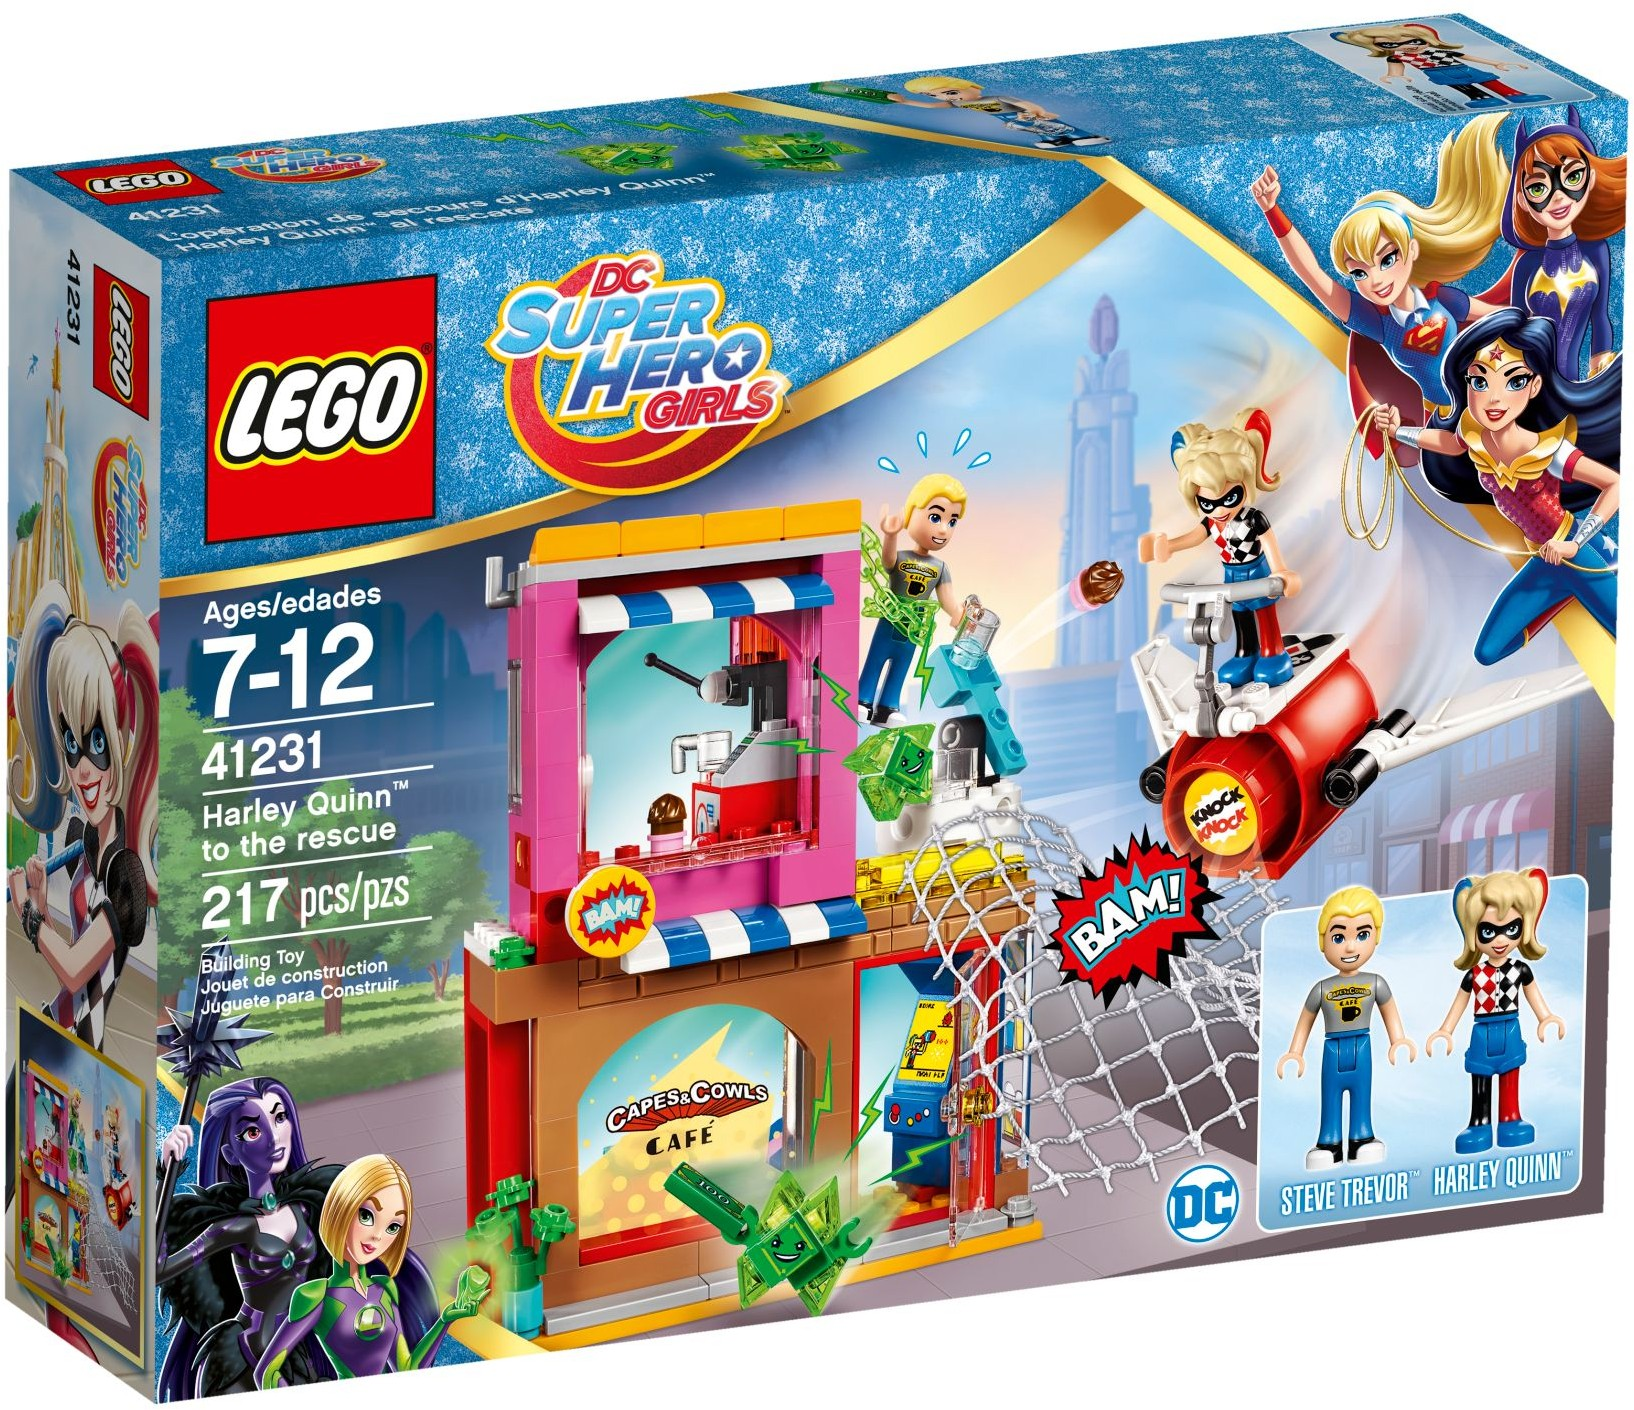 Mua đồ chơi LEGO 41231 - LEGO DC Super Hero Girls 41231 - Harley Quinn Giải Cứu Steve Trevor (LEGO DC Super Hero Girls Harley Quinn to the rescue 41231)